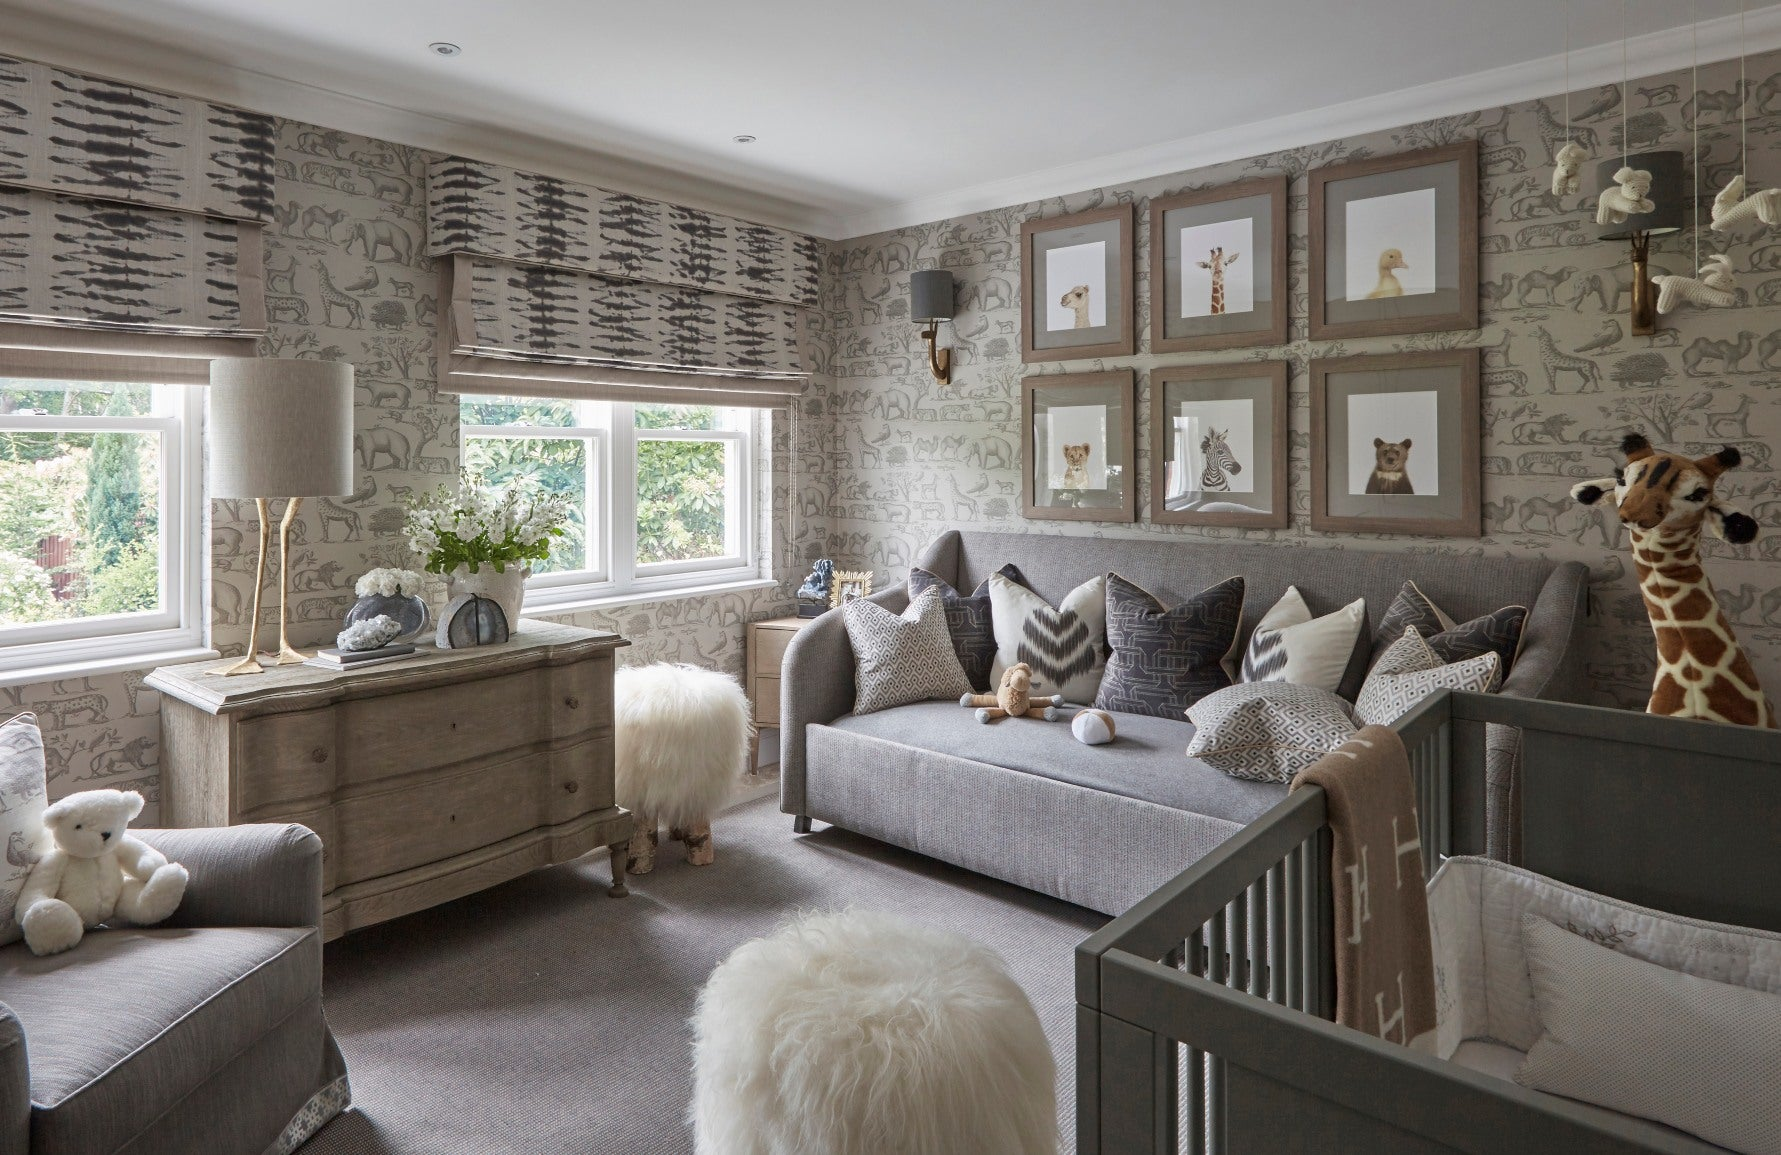 Sophie Paterson on Mastering Rustic Chic Interior Design - Discover more on LuxDeco Style Guide